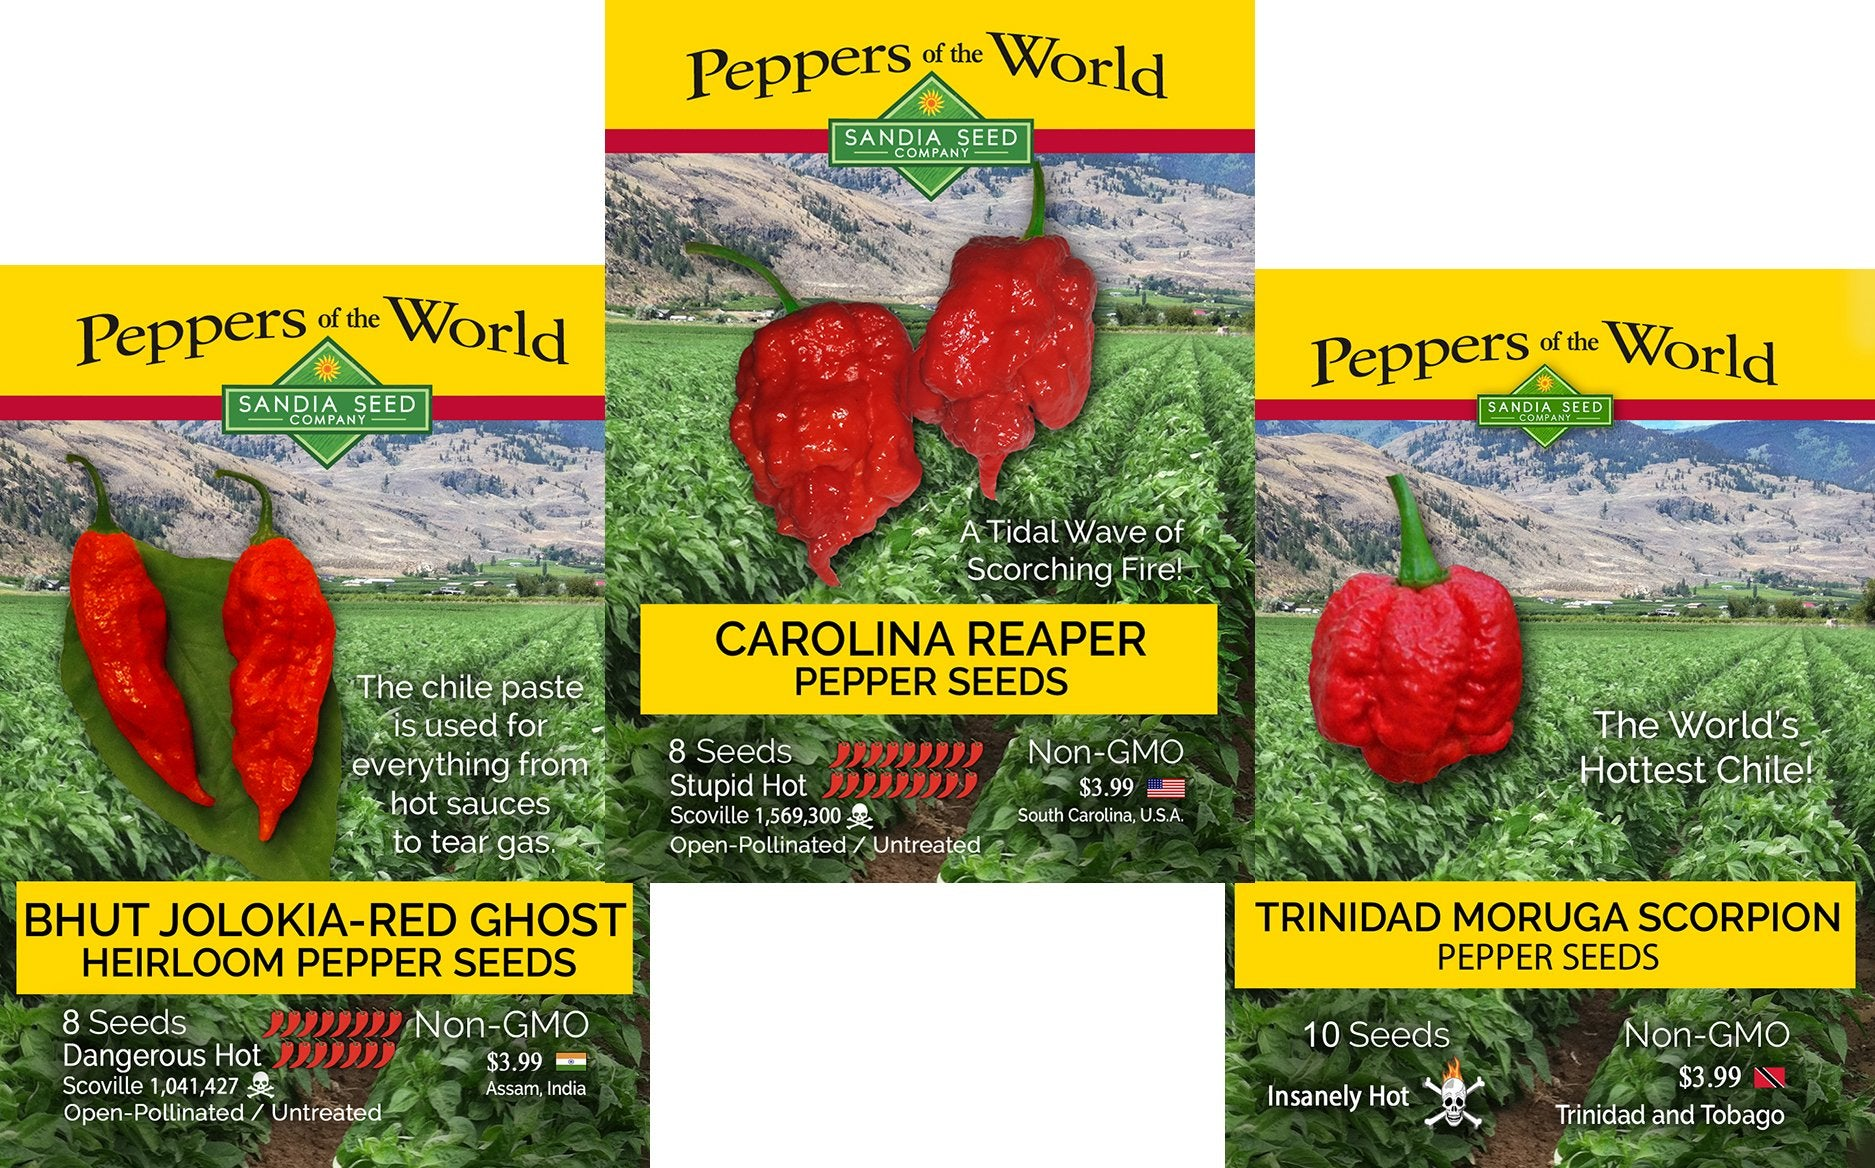 Where can I buy the hottest hot pepper seeds? SandiaSeed.com has 100s of peppers from around the world.